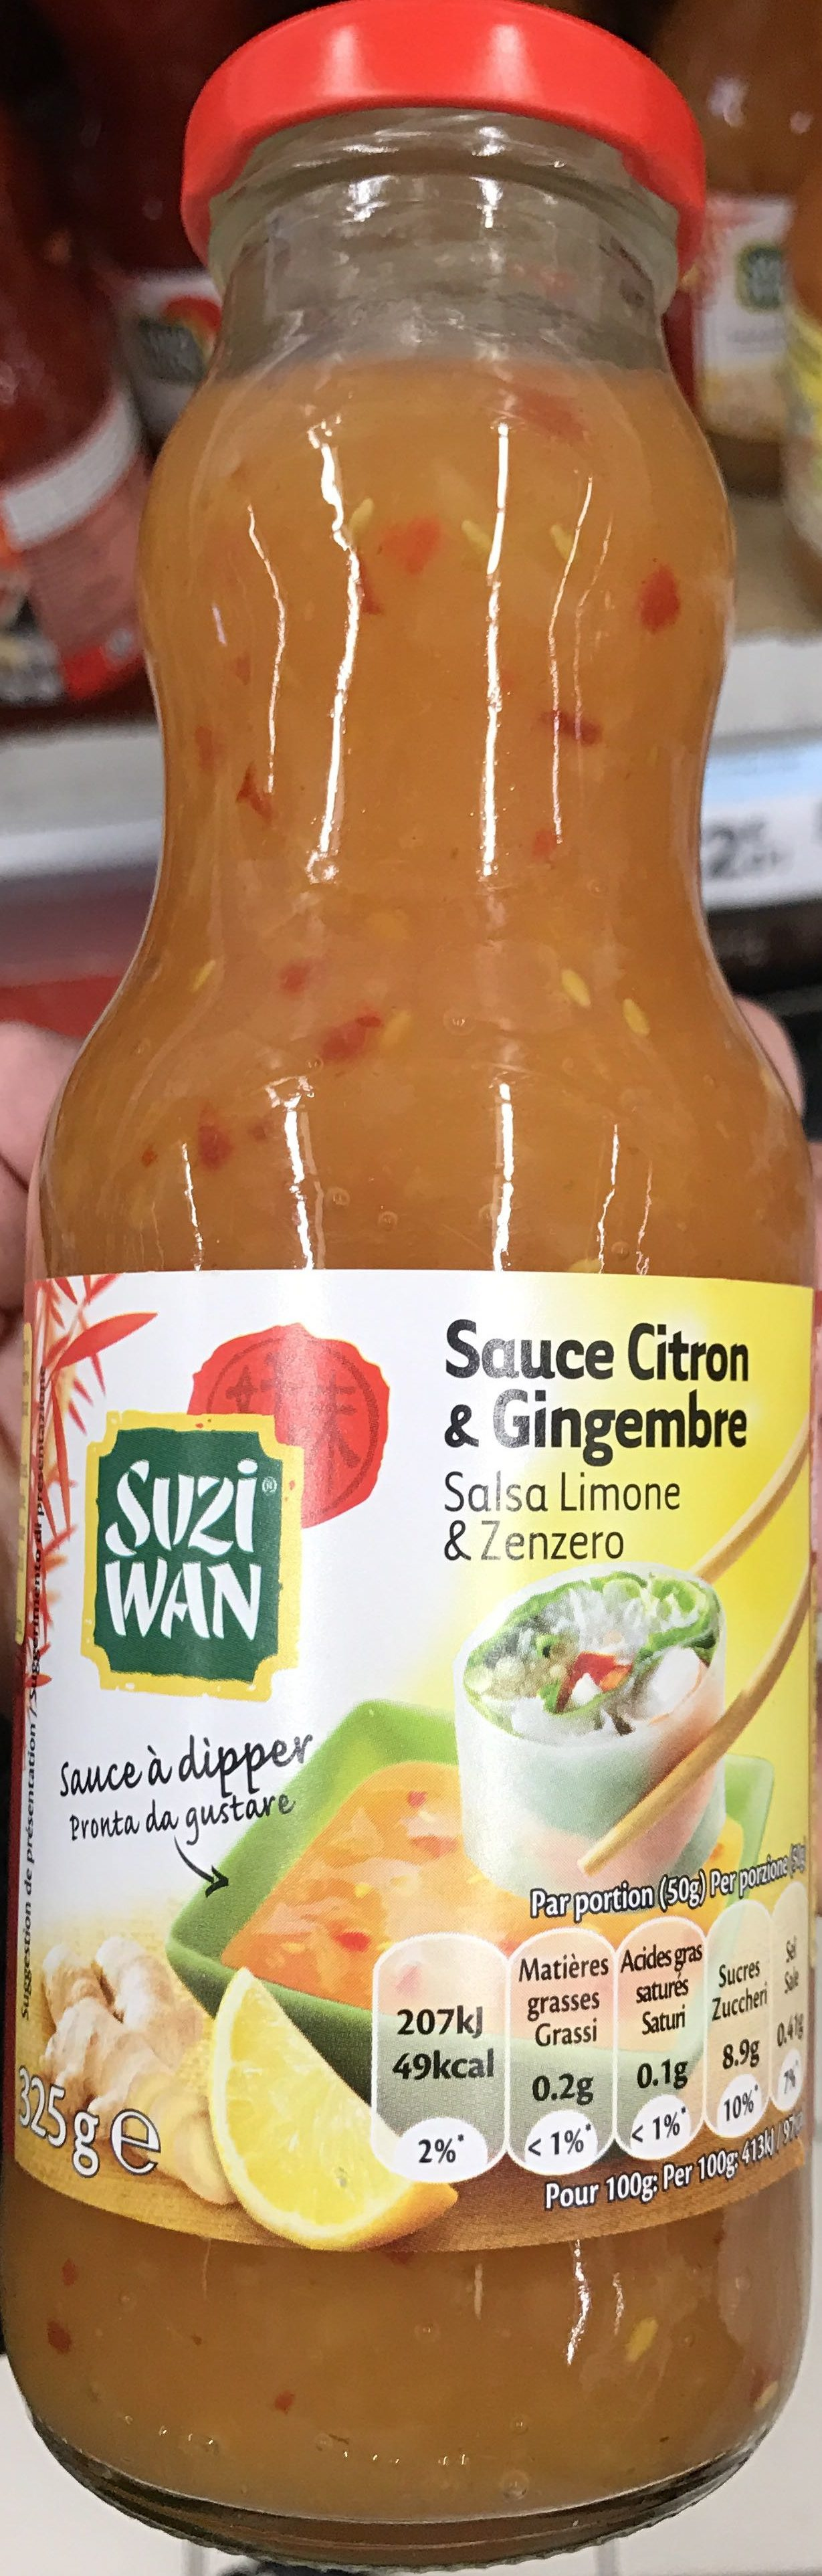 Sauce Citron & Gingembre - Product